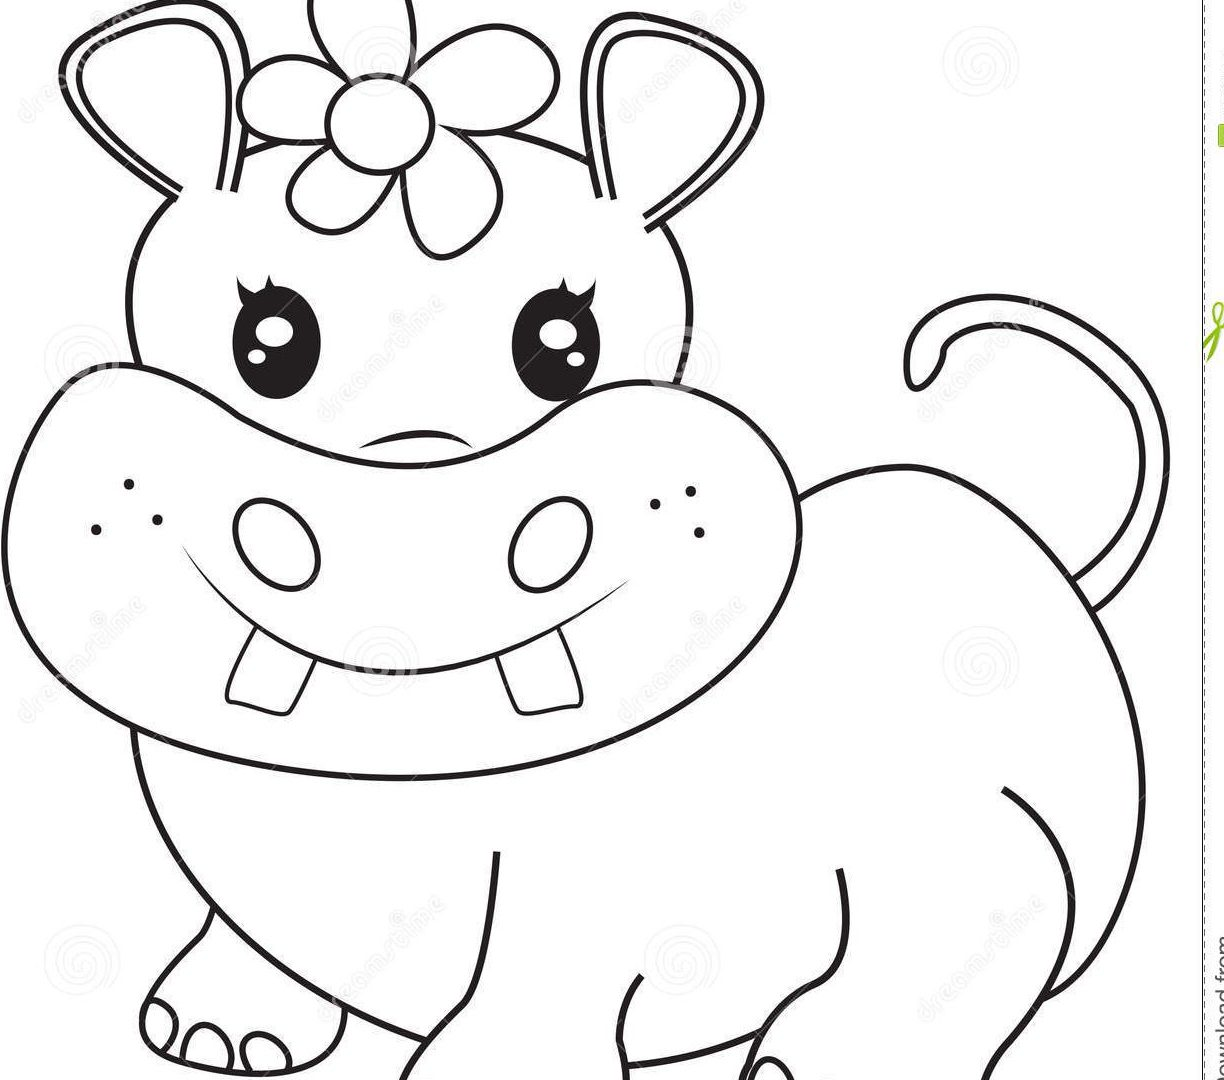 1224x1080 Coloring Page Hippo Pages To Print Free For Kids Printable